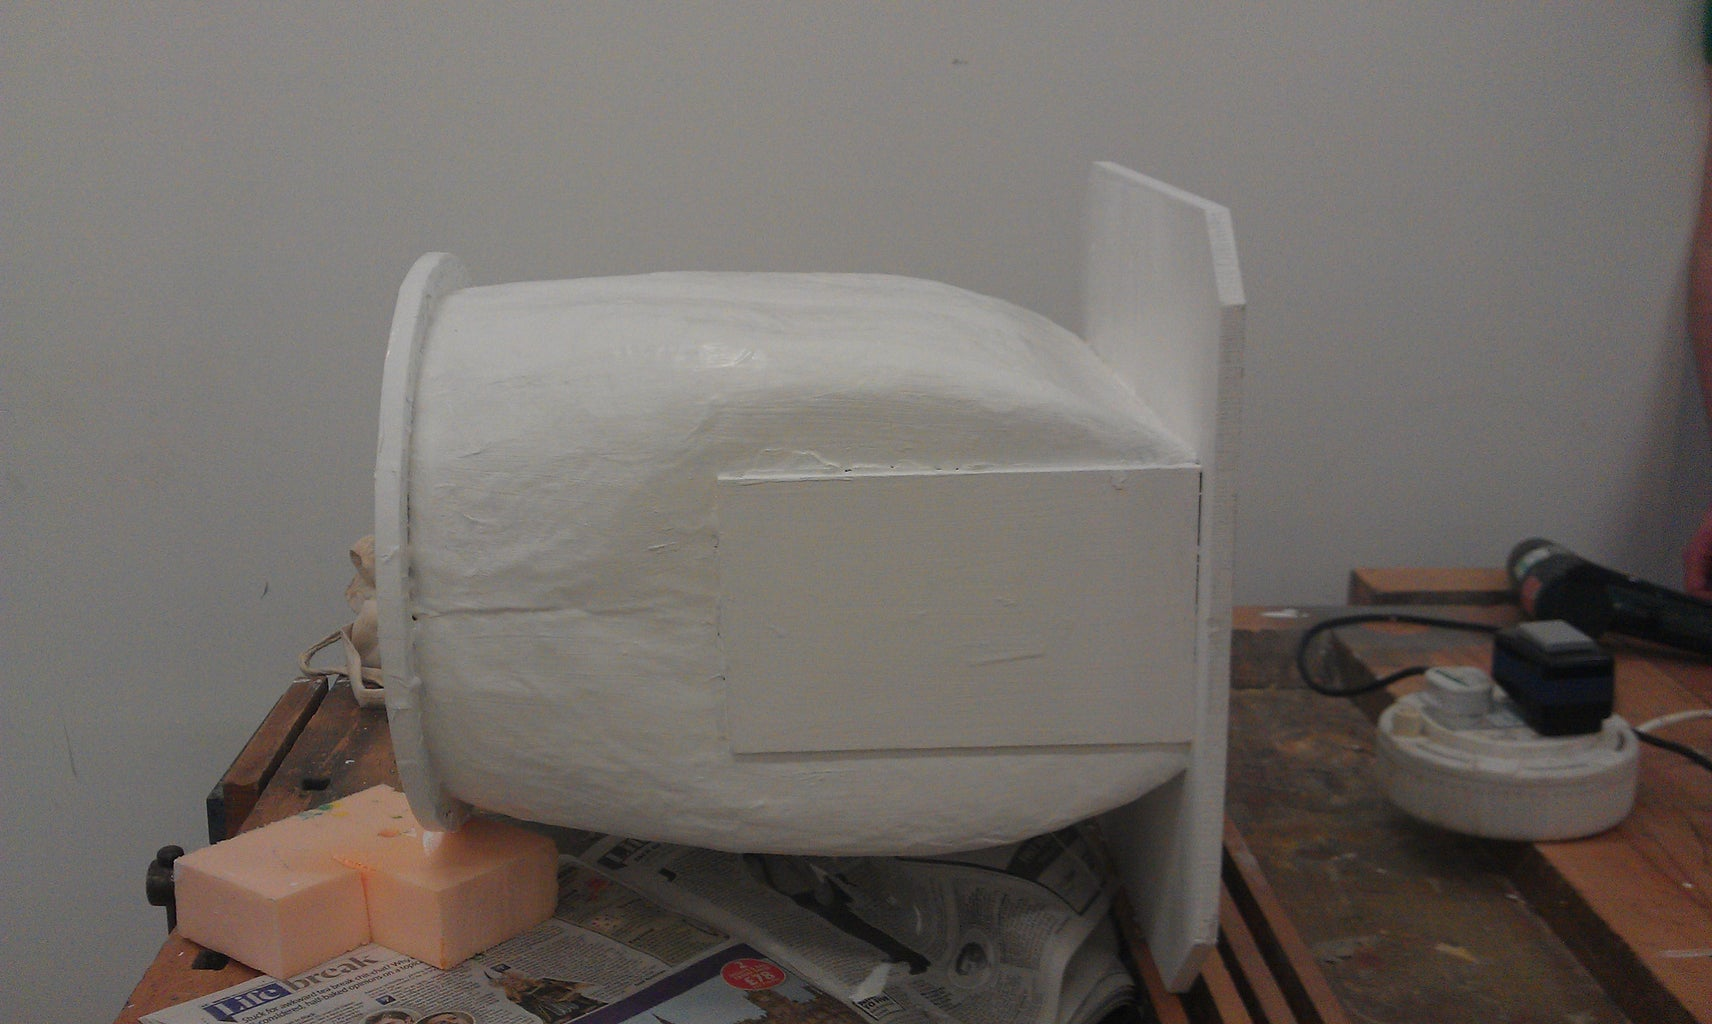 Making the Duct